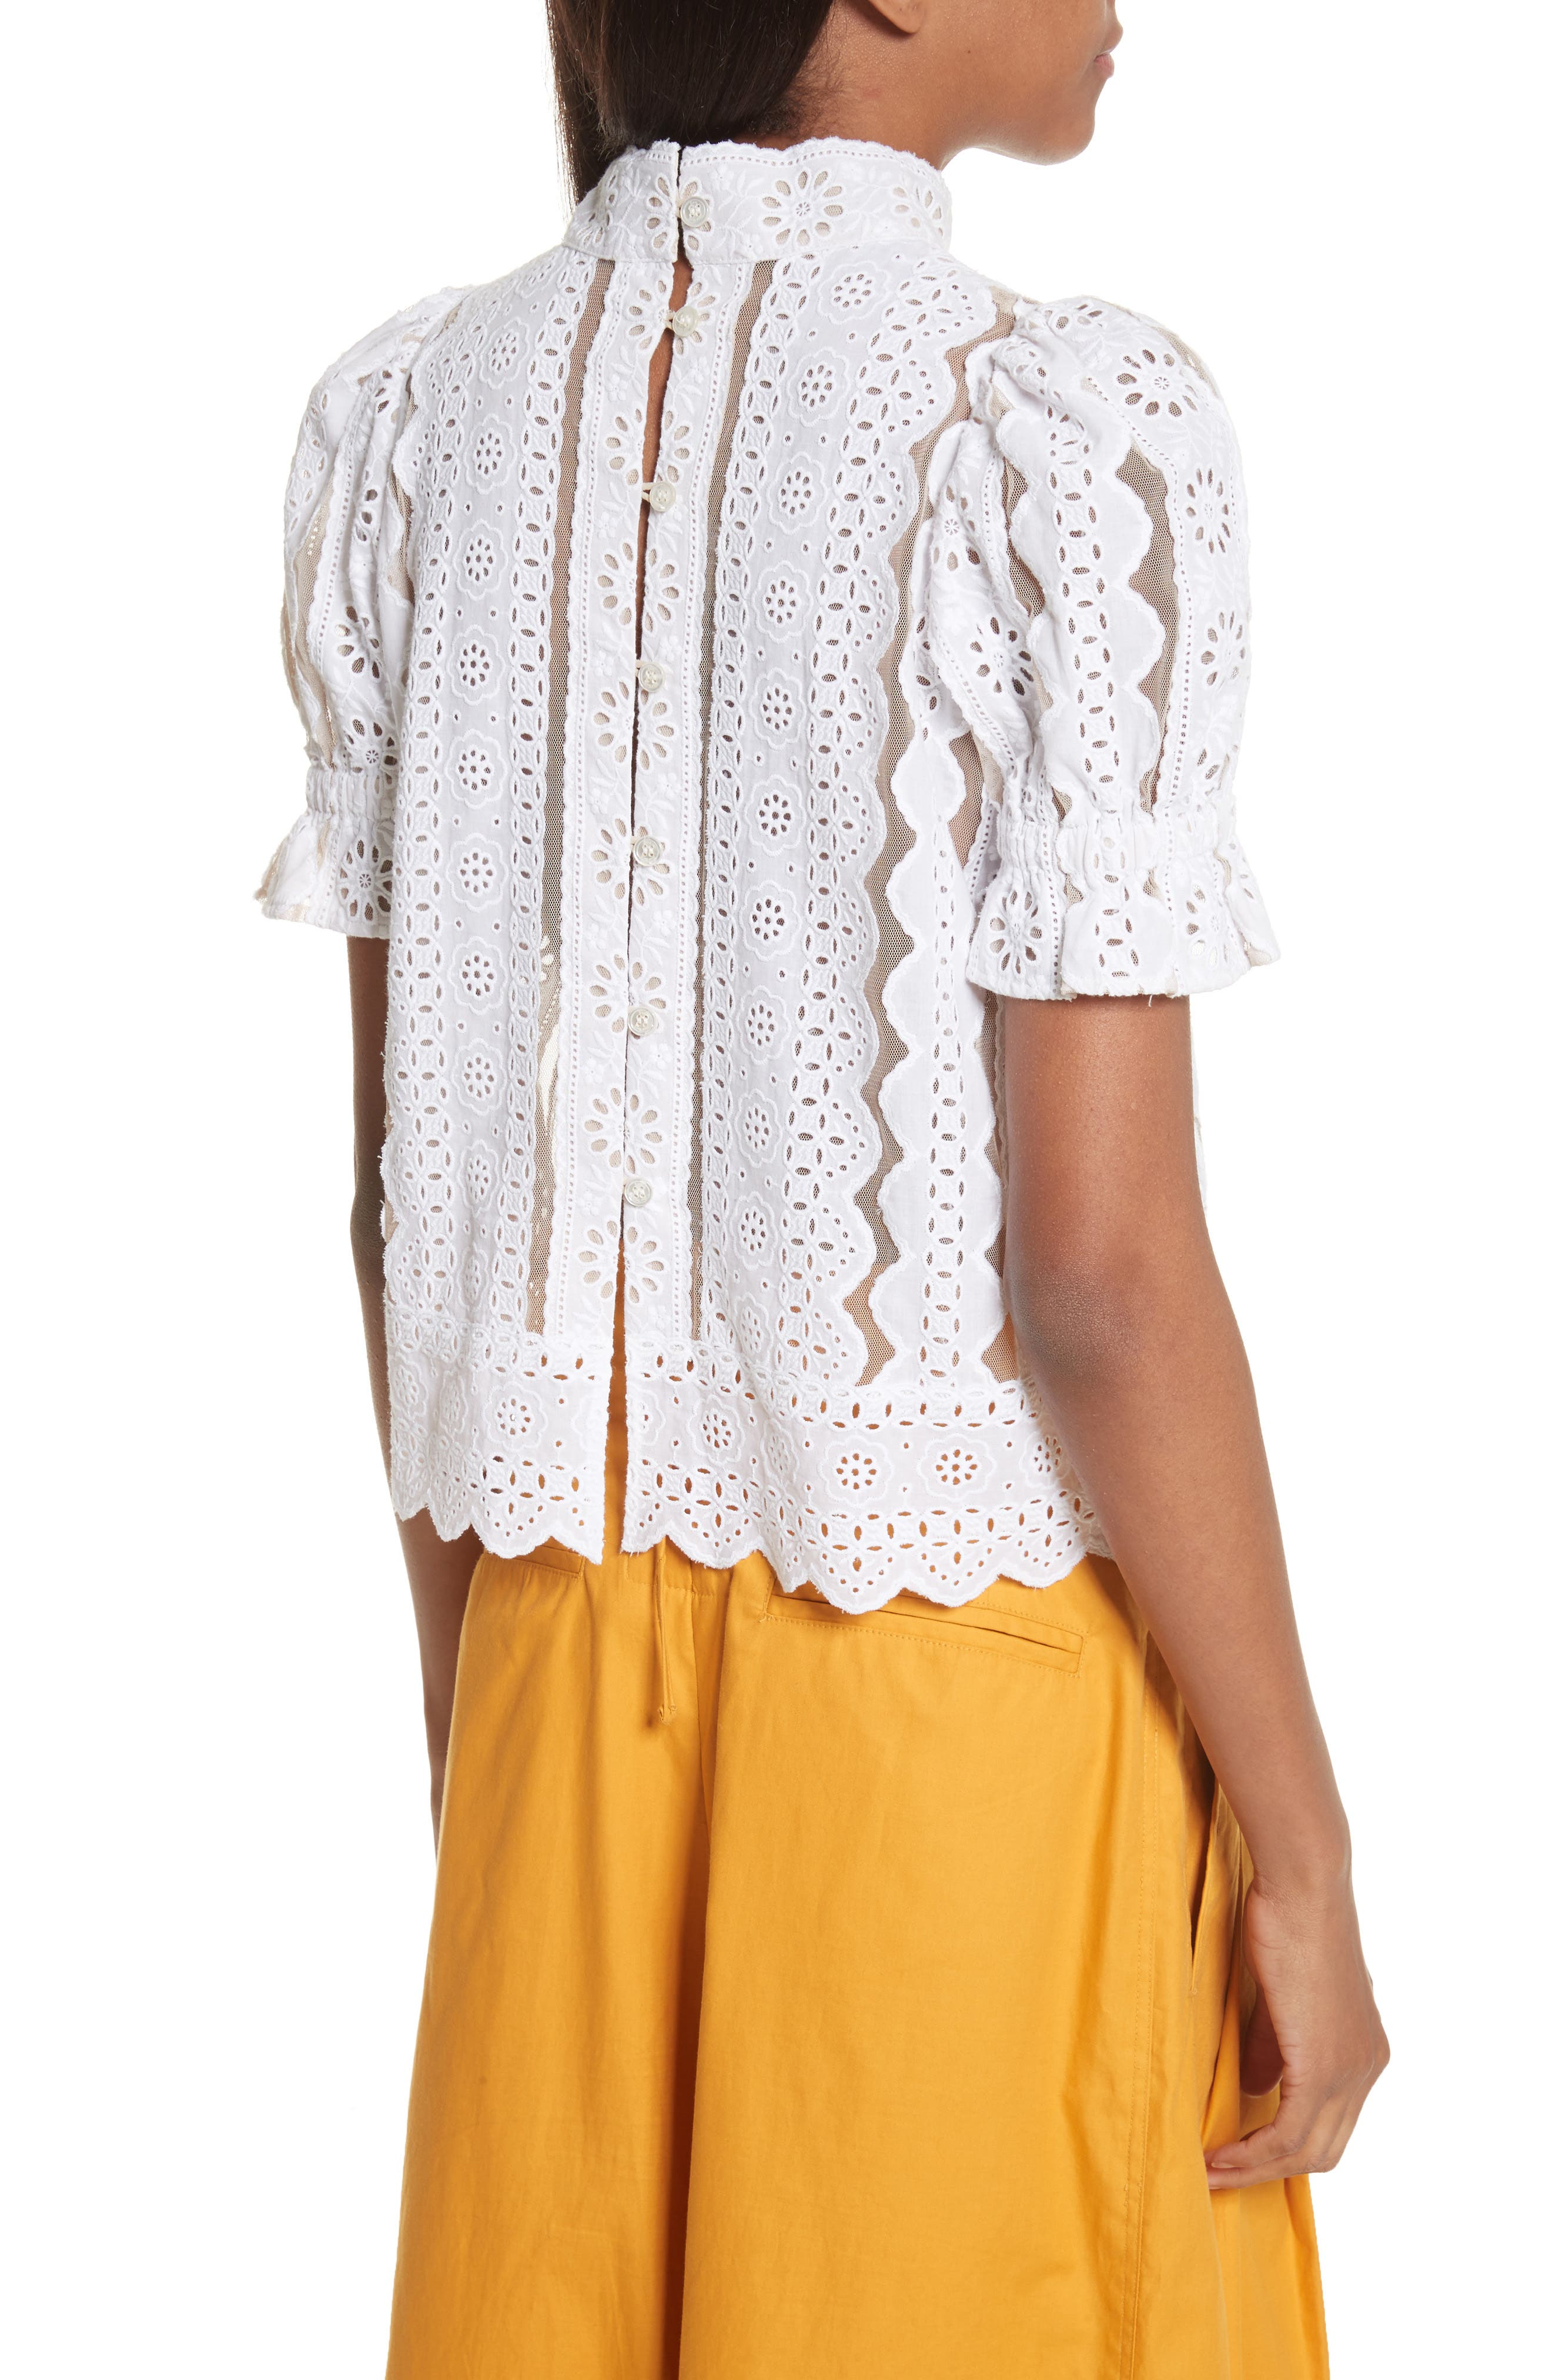 Luna Cotton Eyelet Top,                             Alternate thumbnail 4, color,                             White With Nude Mesh